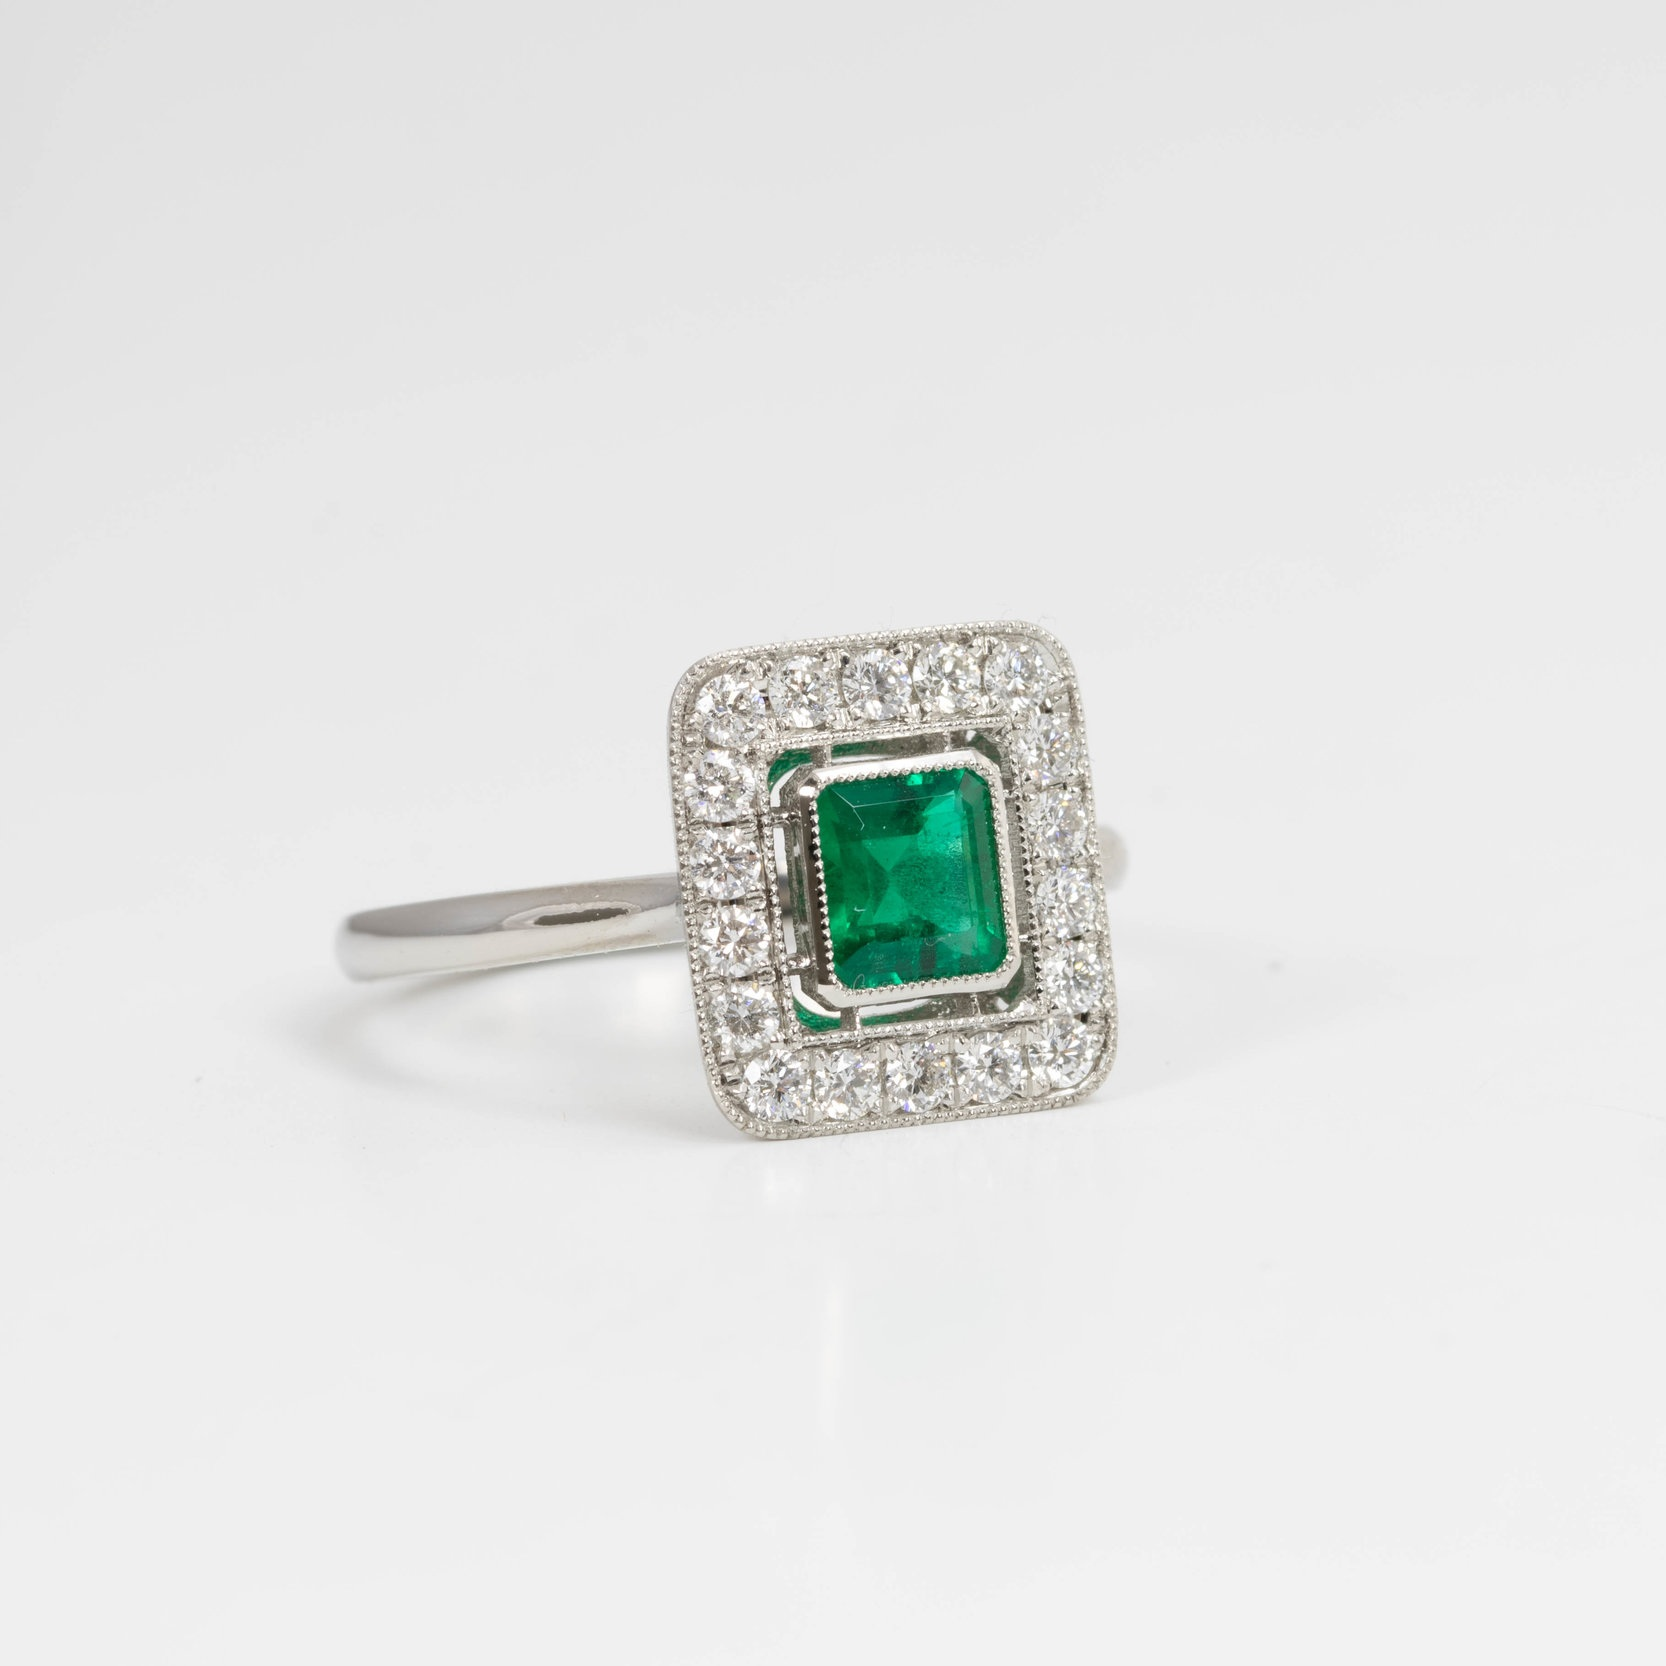 Copy of Pretty emerald and diamond set square cluster ring. Made in Chichester England.